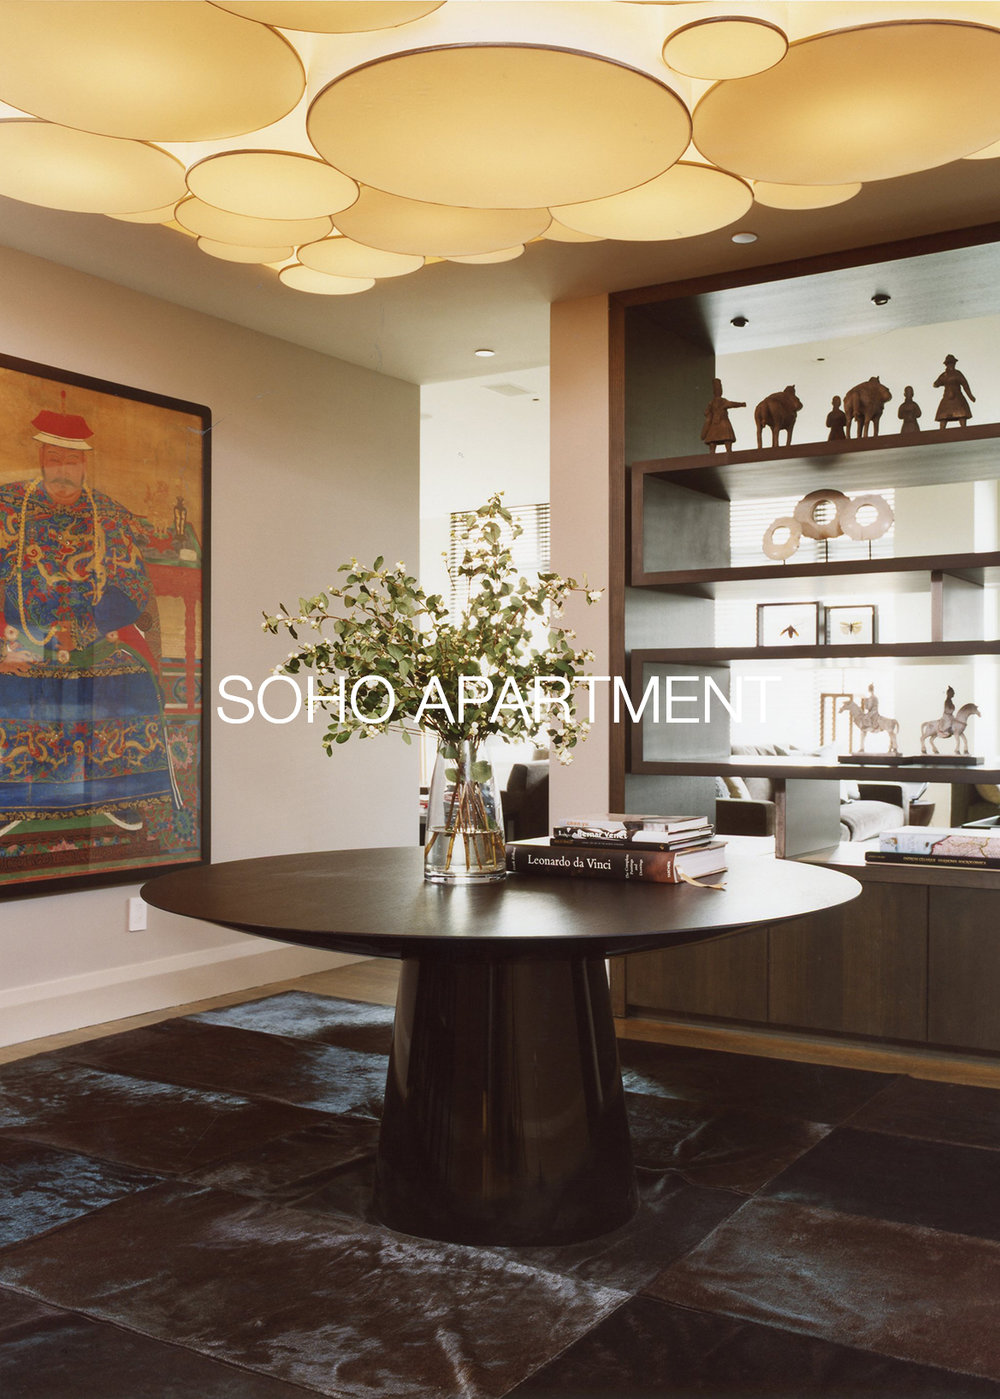 Soho Apartment.jpg